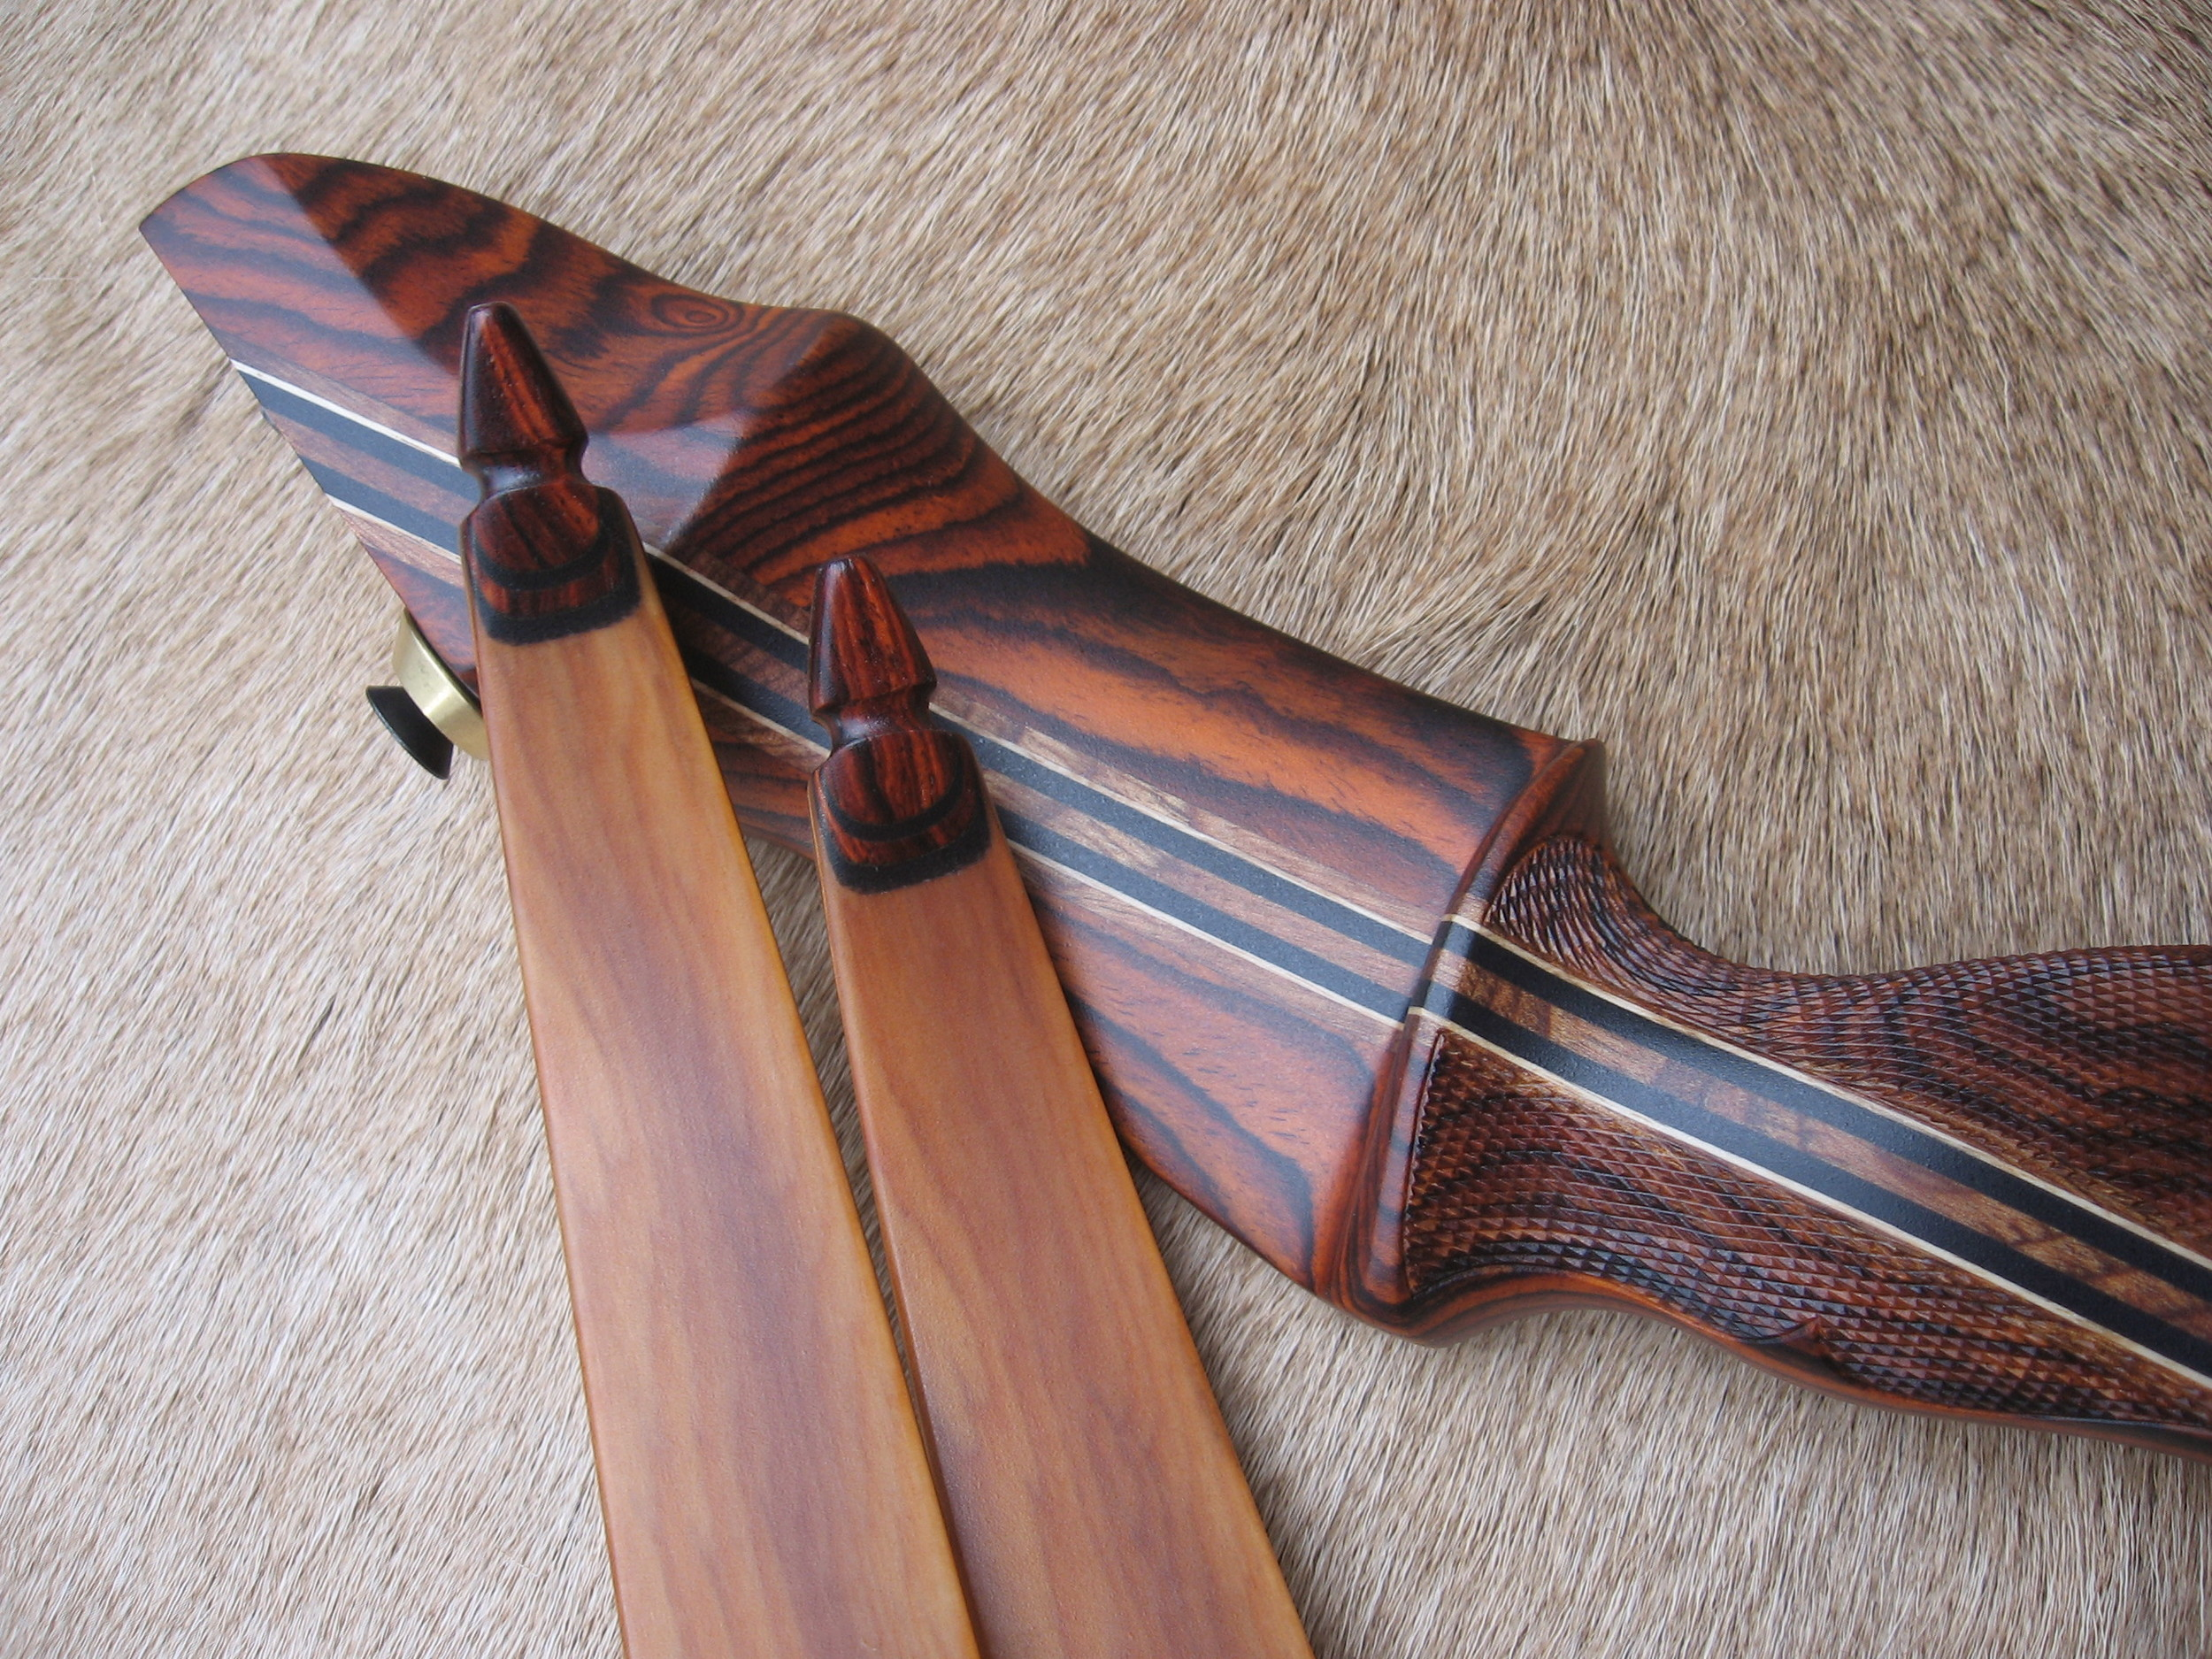 Cocobolo Riser- Yew limbs with Cocobolo tips